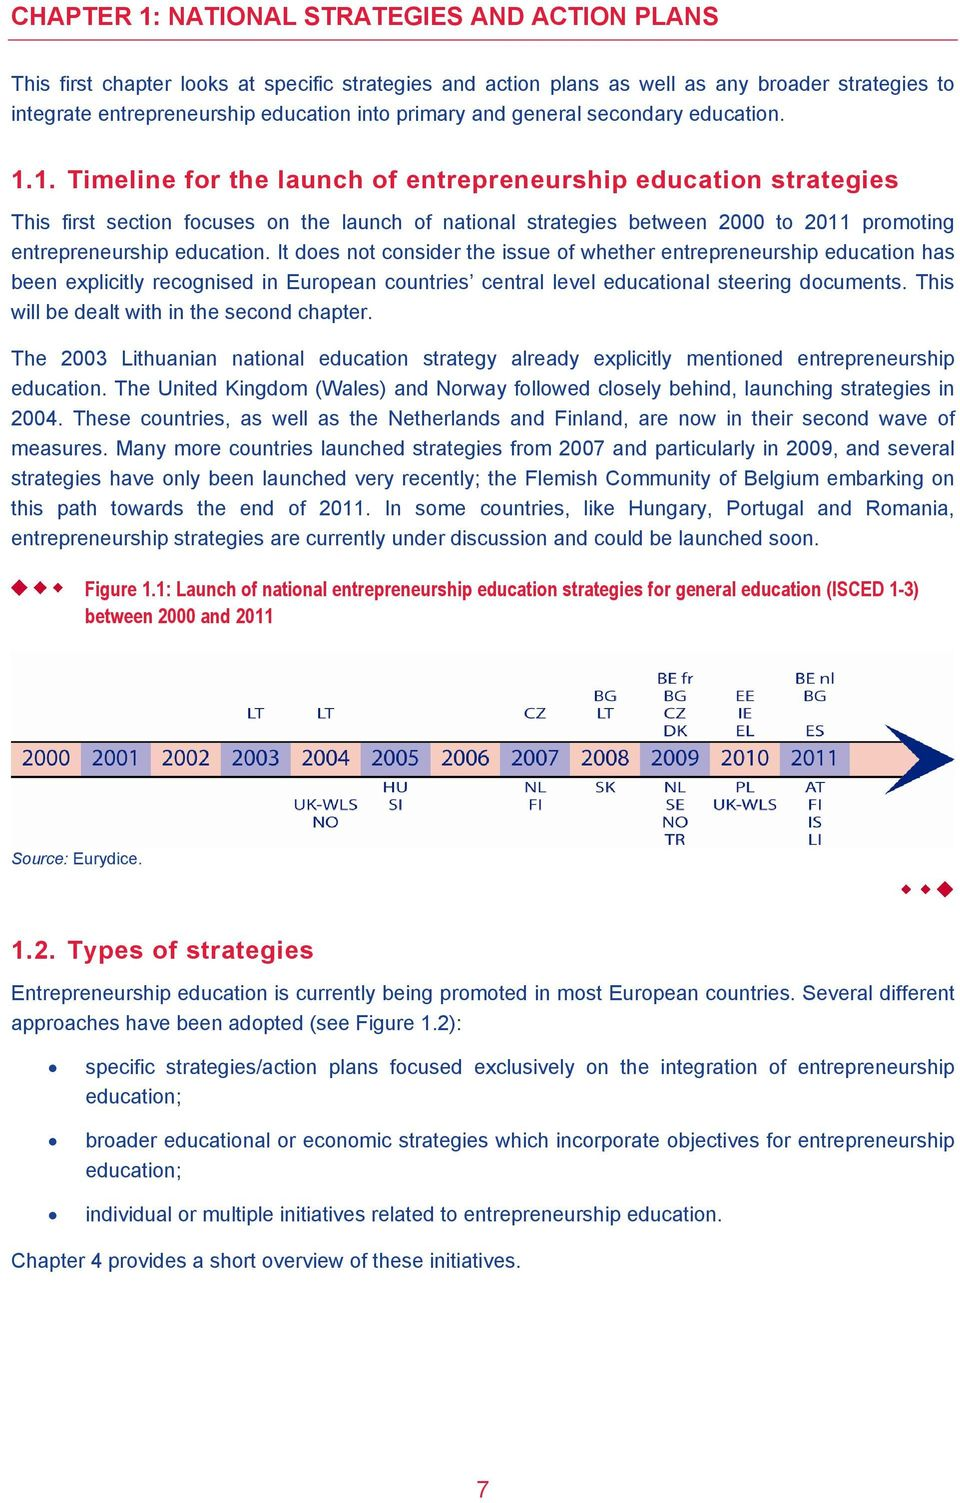 1. Timeline for the launch of entrepreneurship education strategies This first section focuses on the launch of national strategies between 2000 to 2011 promoting entrepreneurship education.